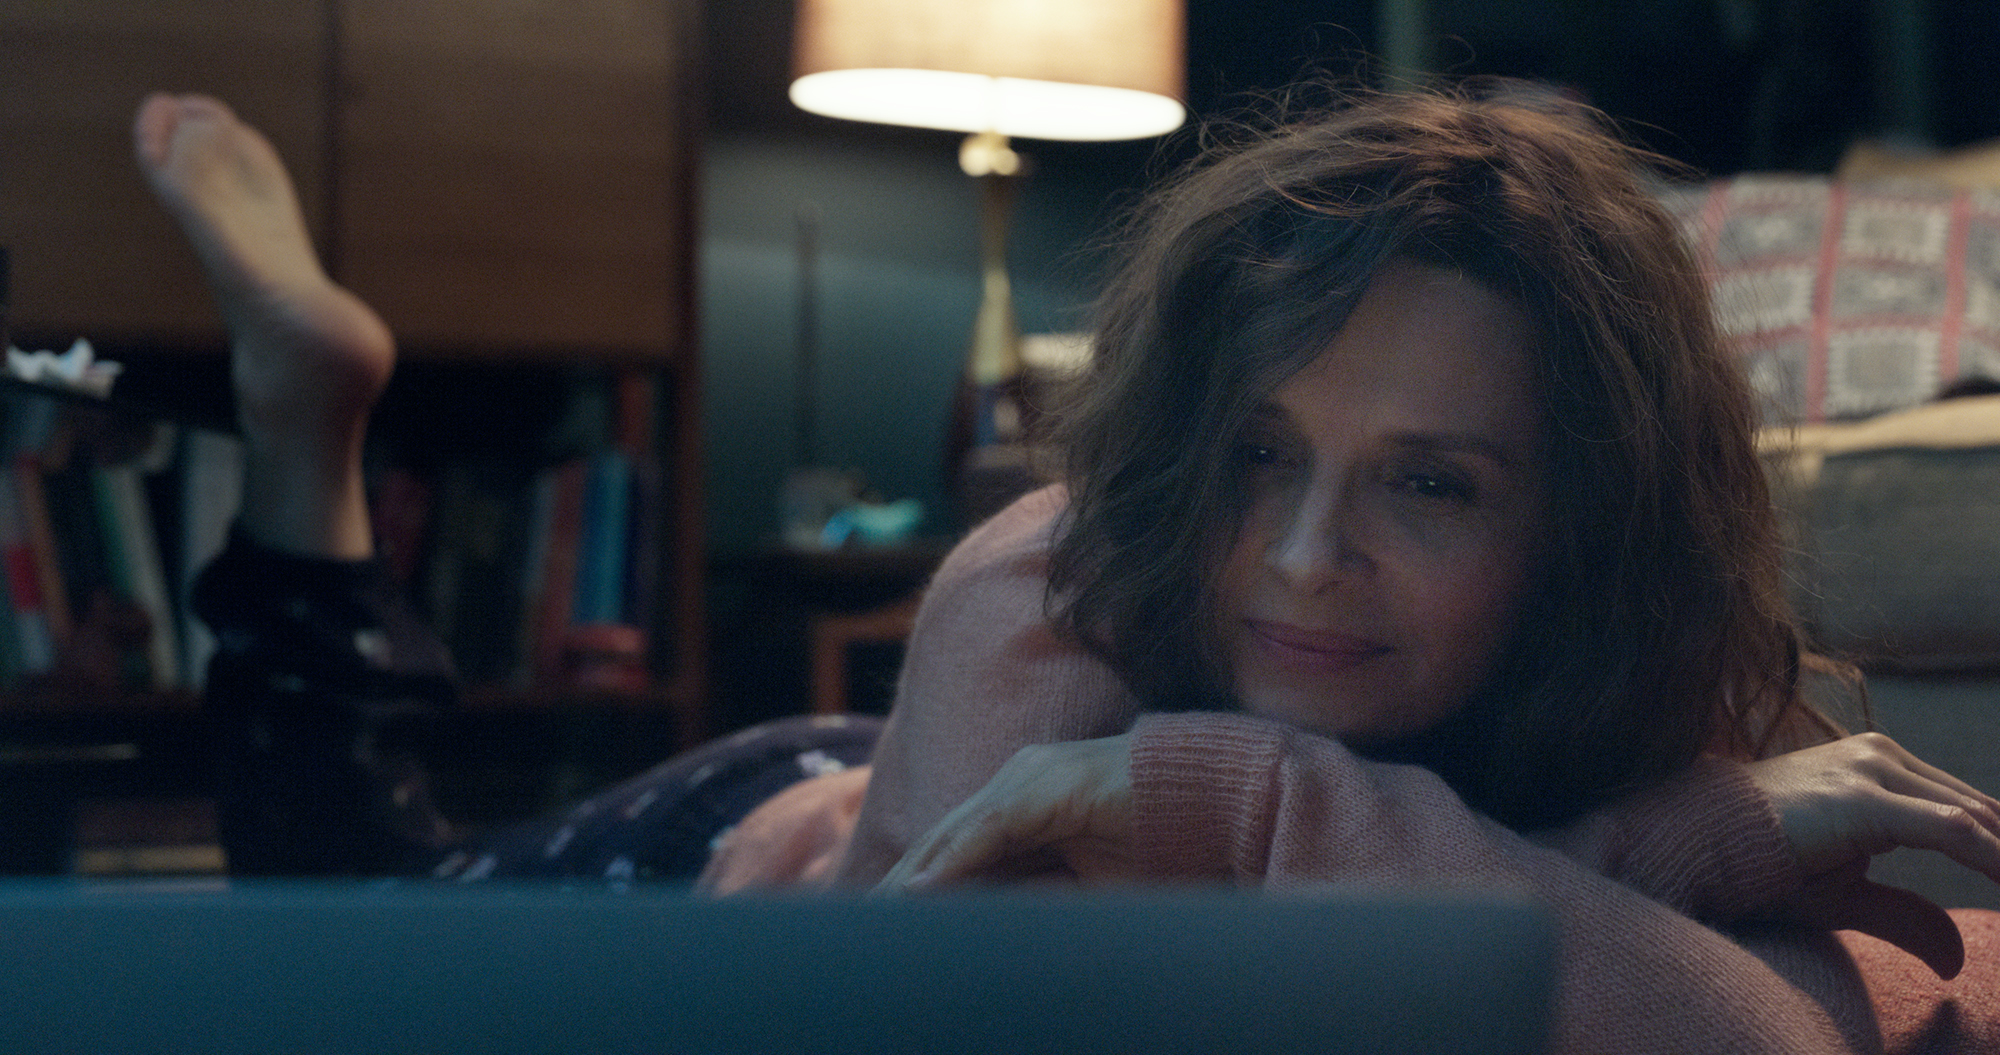 """Juliette Binoche as Claire Millaud in """"Who You Think I Am."""" (Courtesy of Cohen Media Group)"""